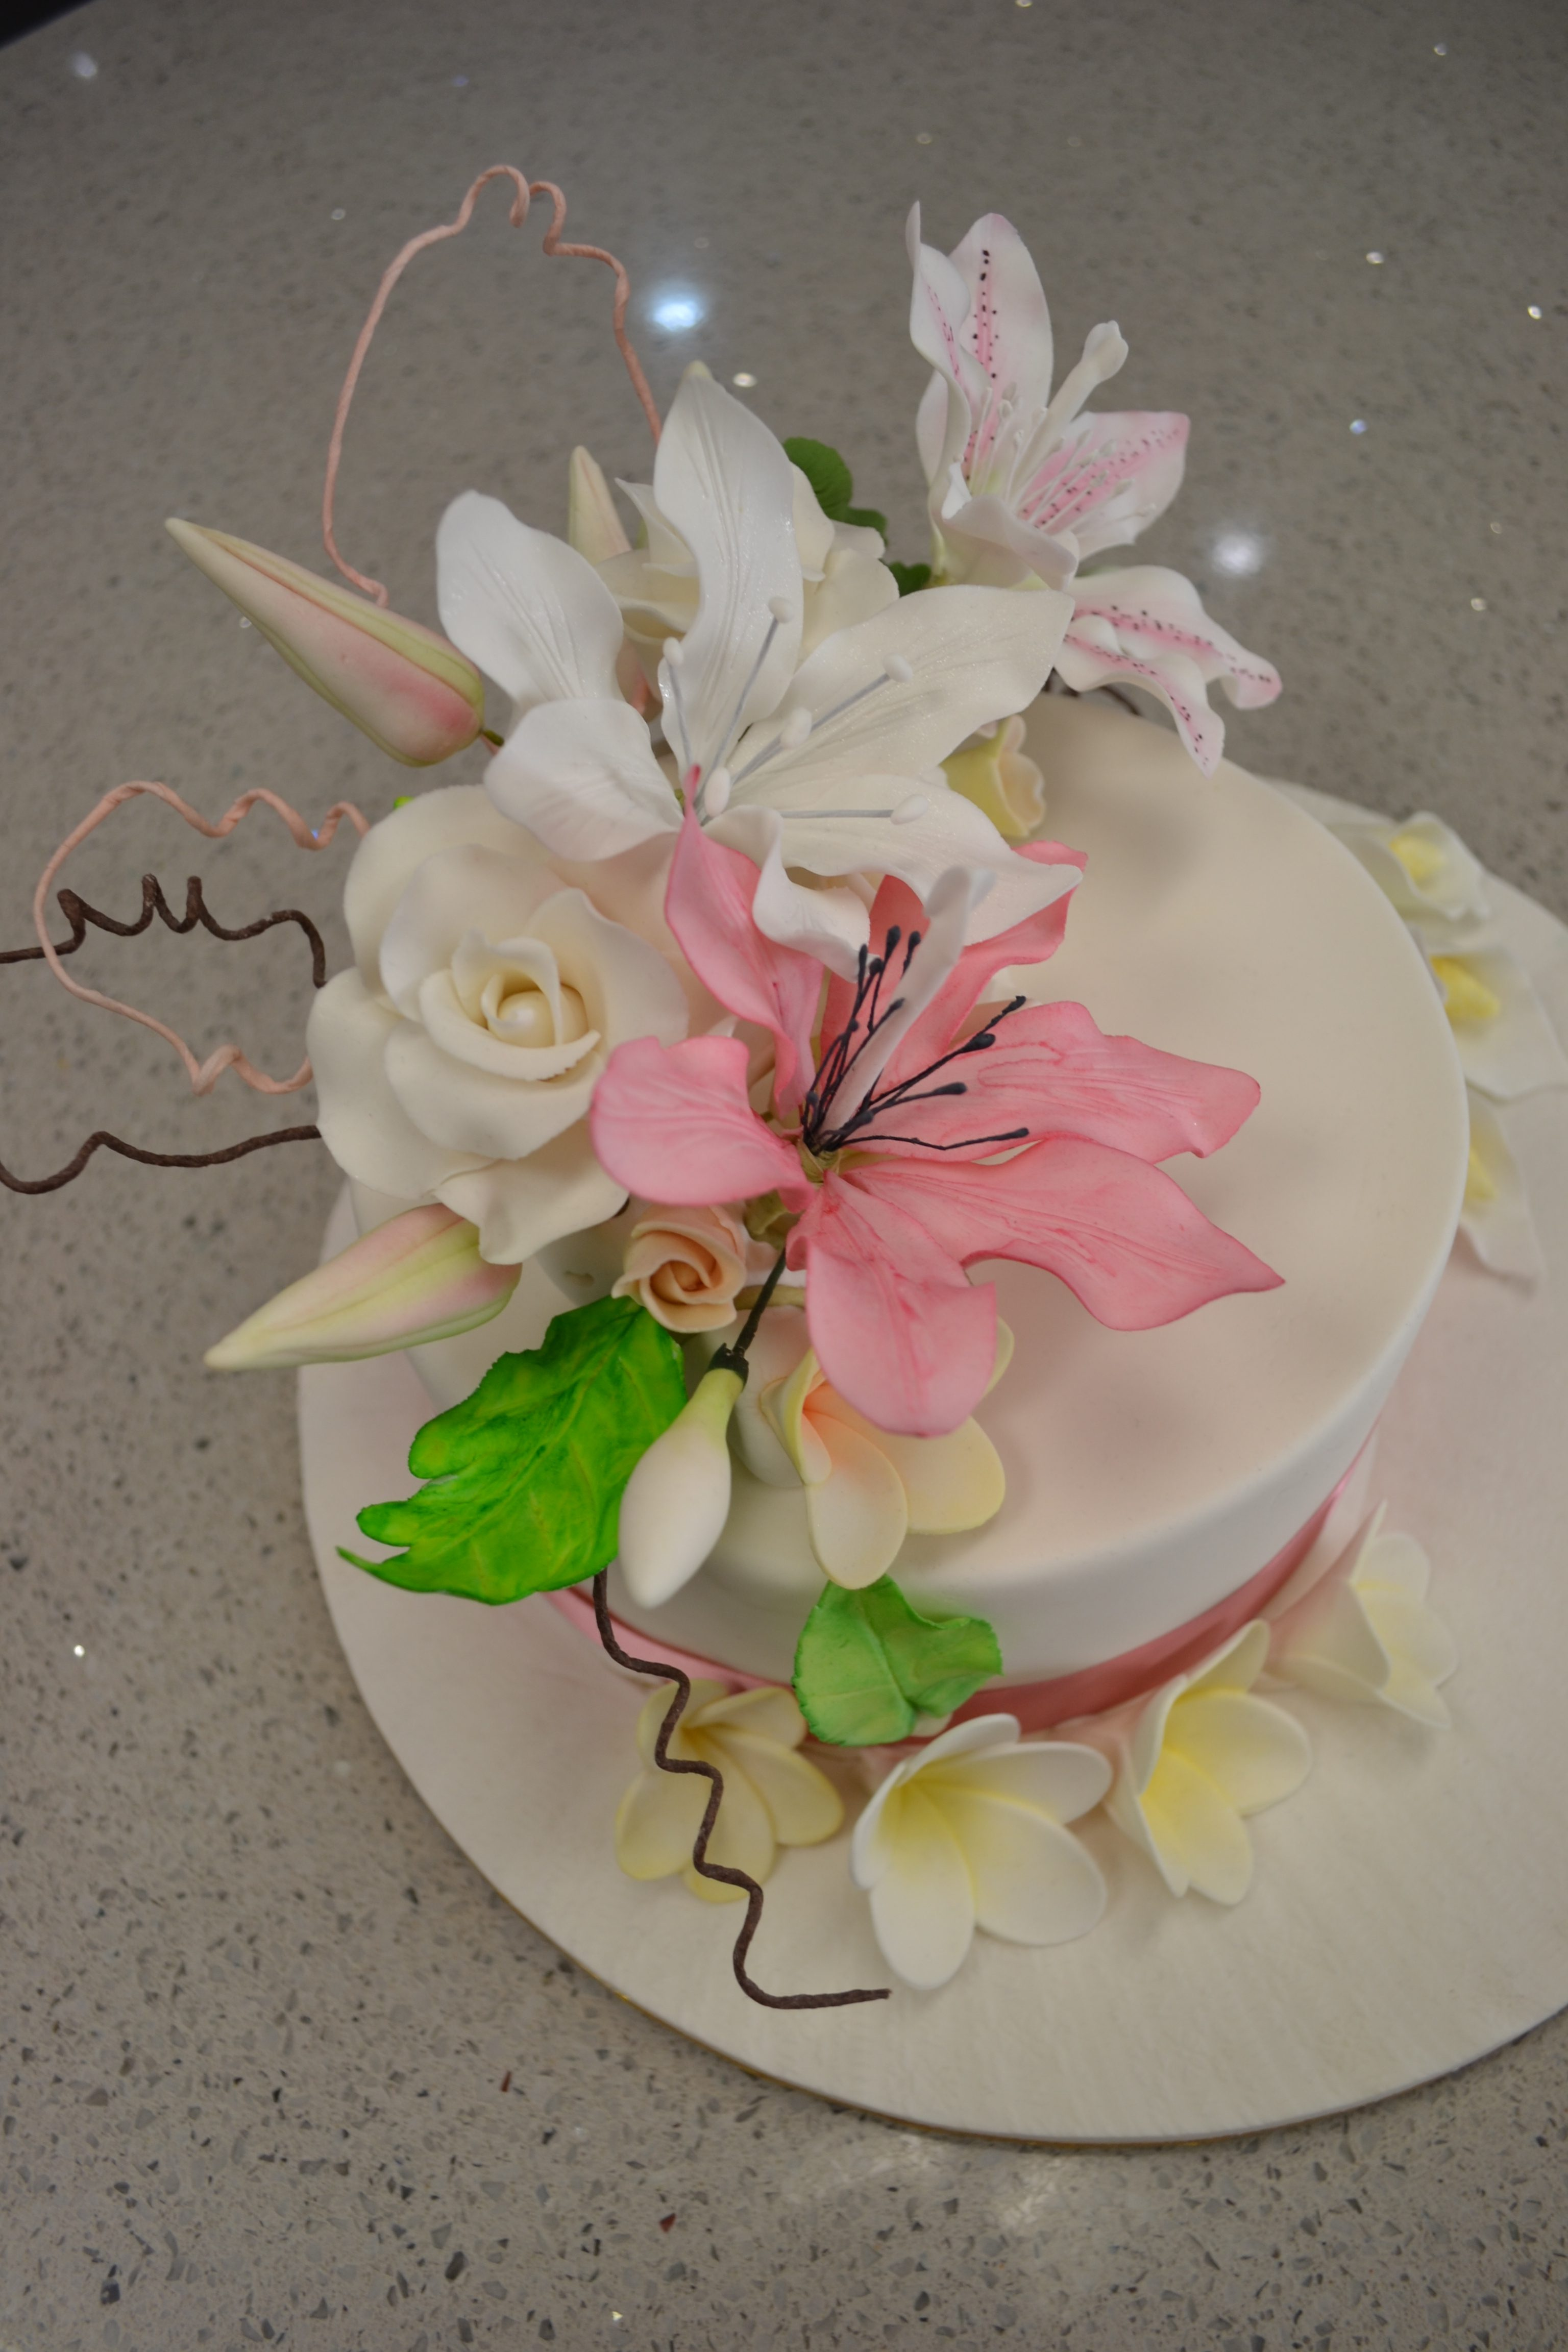 Sugar flower classes Brisbane Contemporary Cakes and Classes